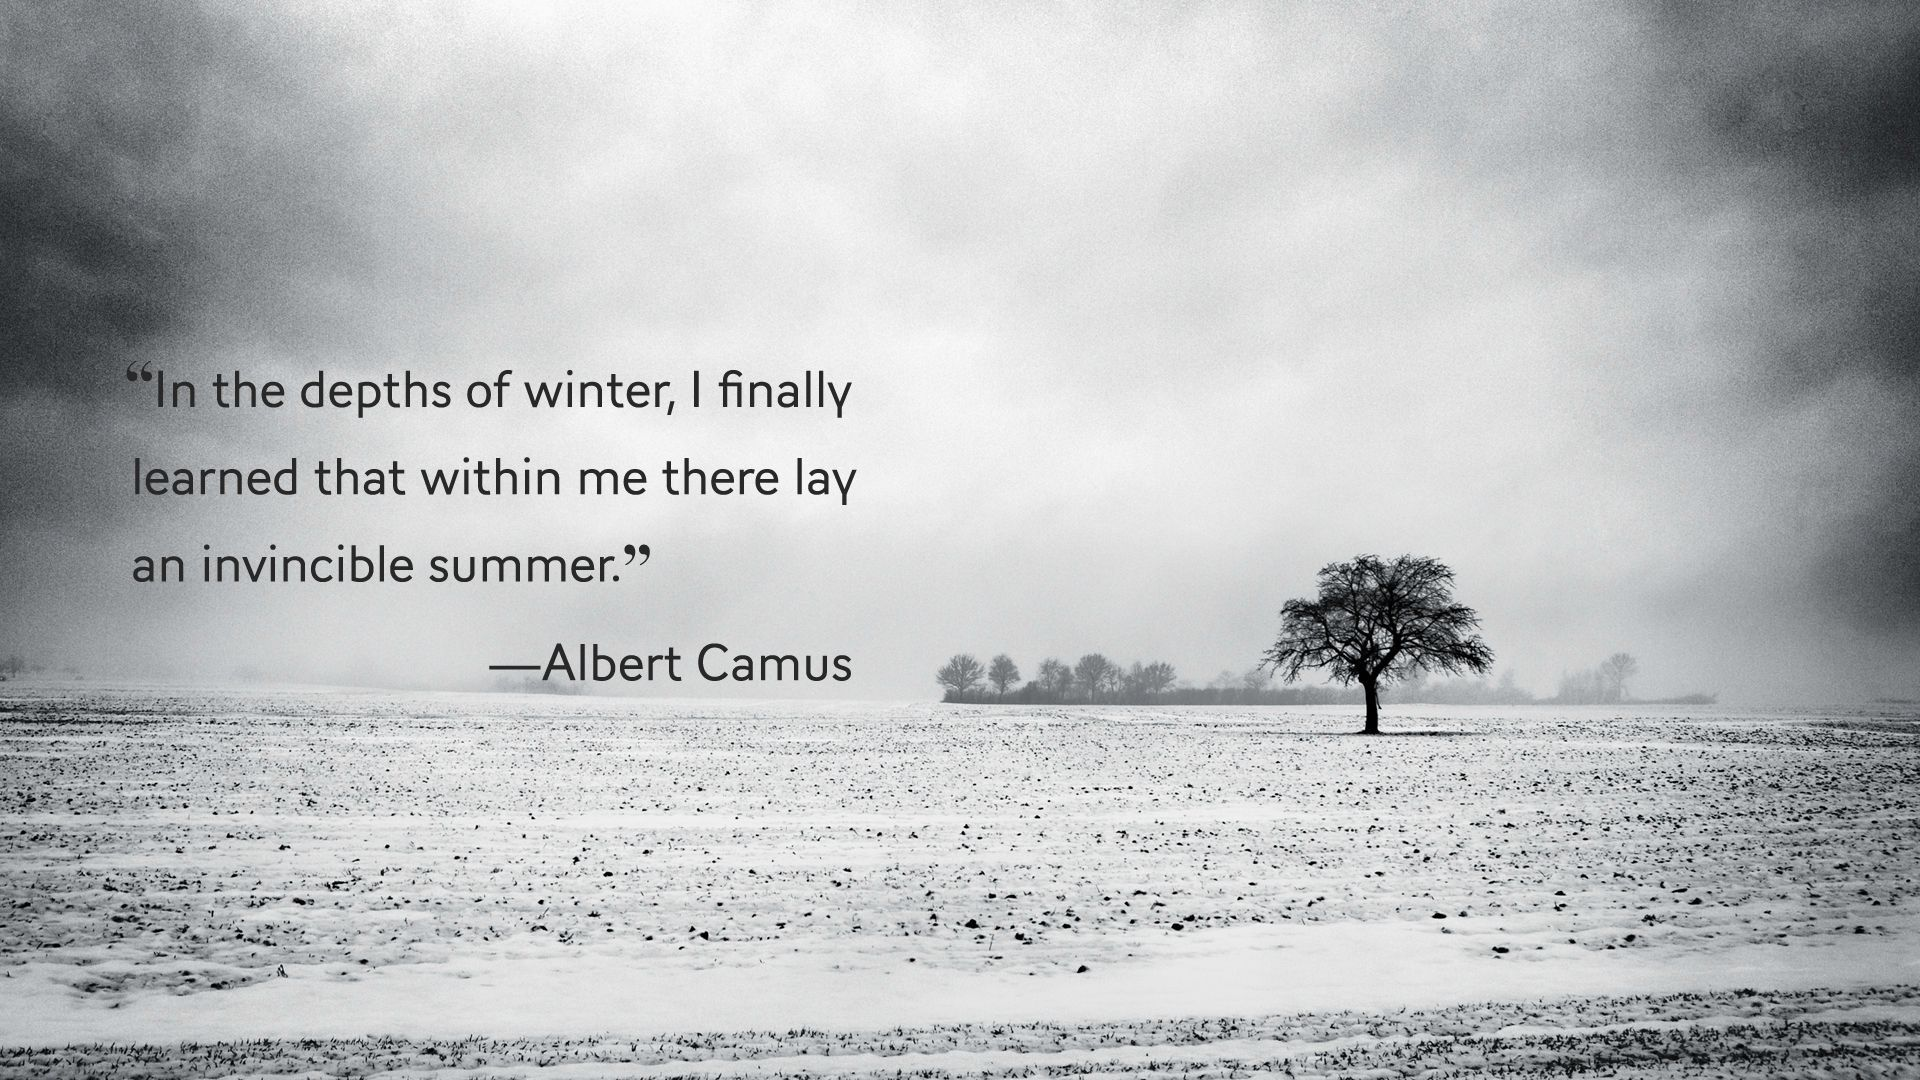 Albert camus quote about unique normal energy different - From Return To Tipasa By French Philosopher Albert Camus